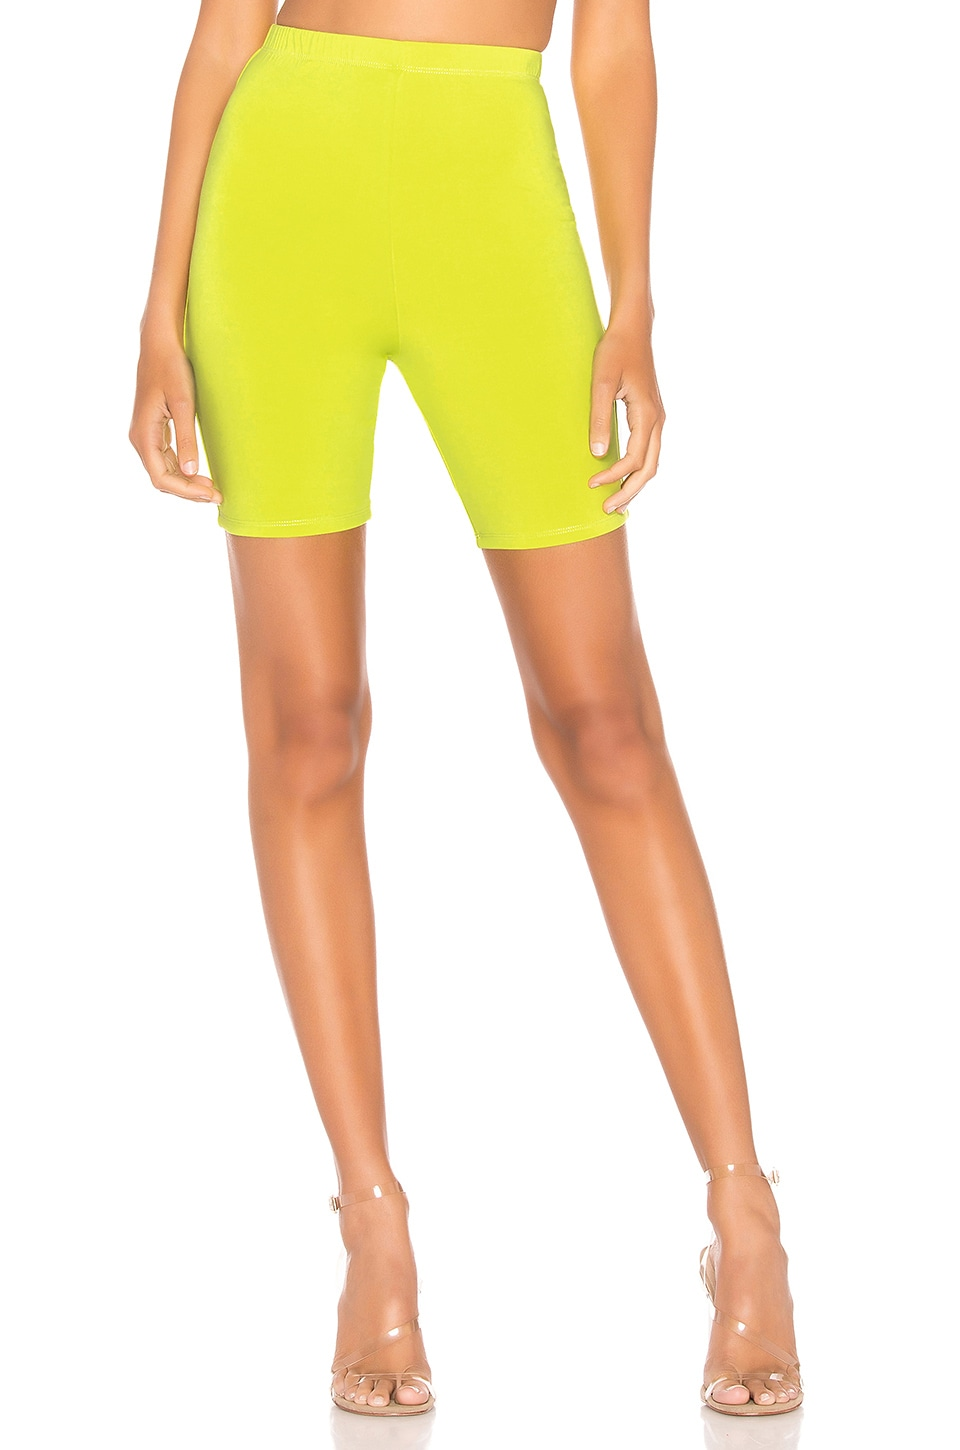 h:ours Her Biker Shorts in Neon Yellow